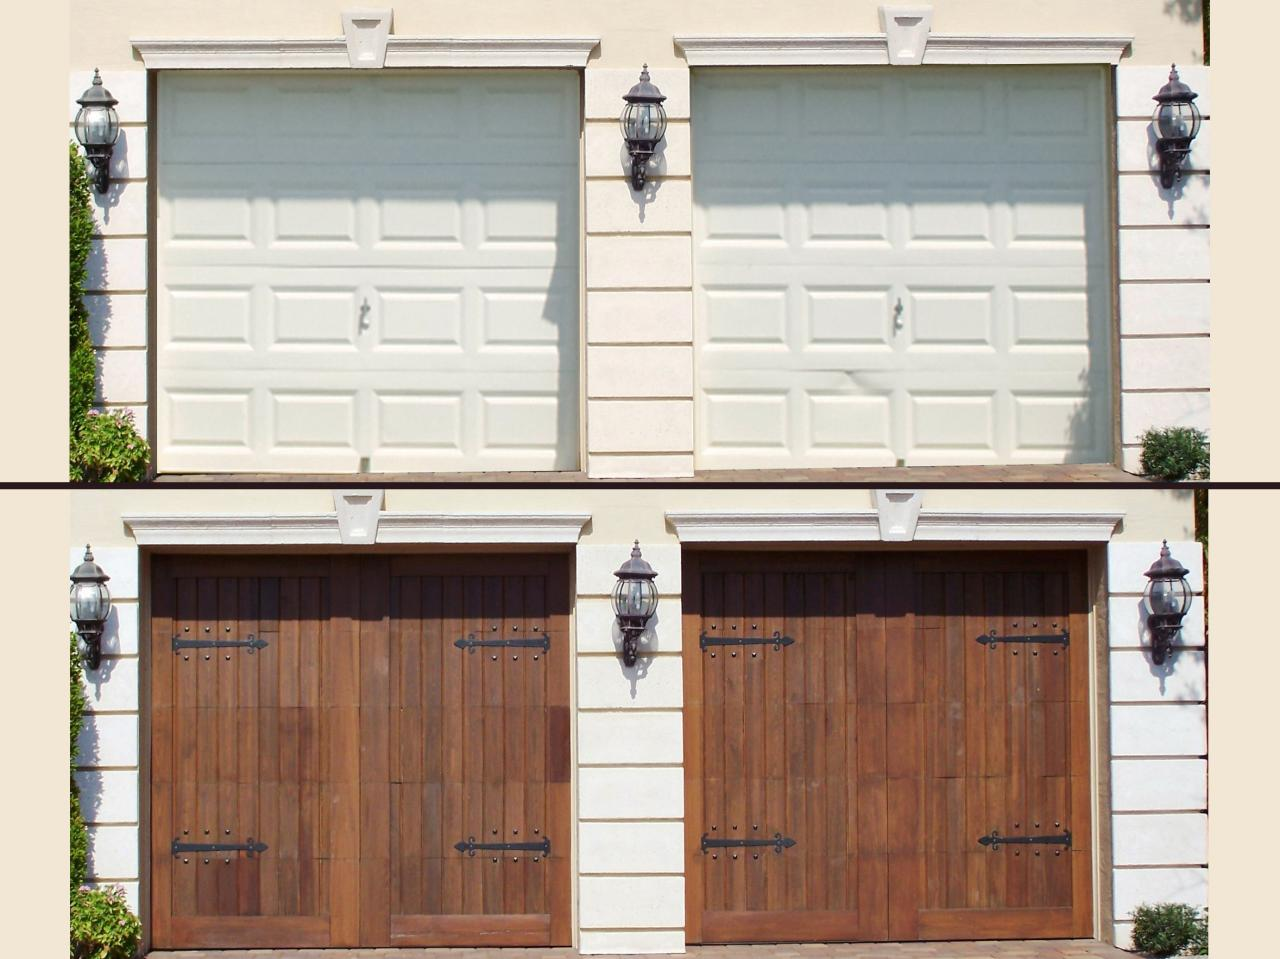 Garage Door Panels : Garage door buying guide diy